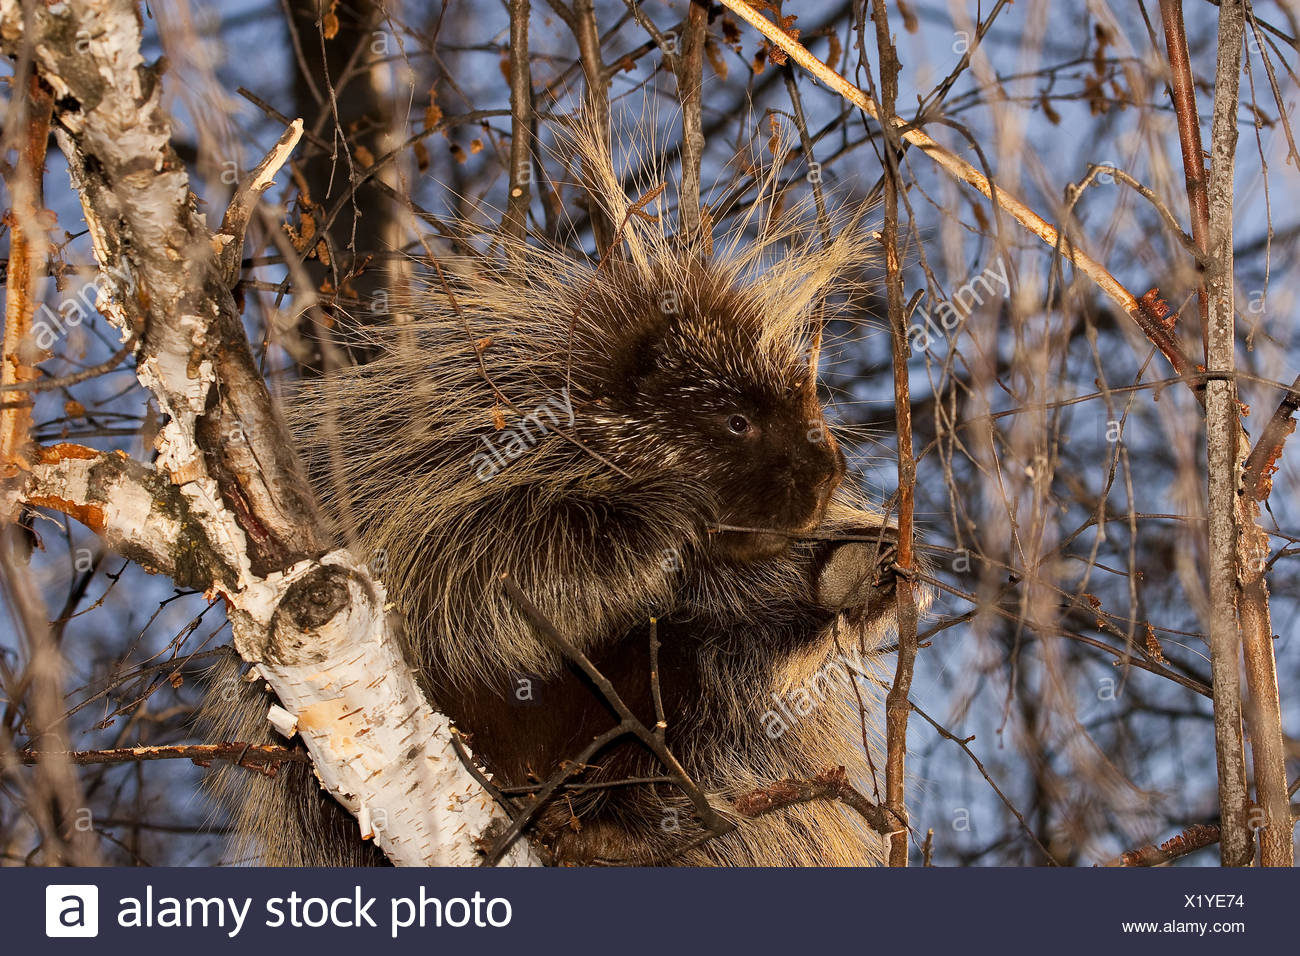 North American Porcupine, Erethizon dorsatum, near Edemonton, Alberta, Canada Stock Photo